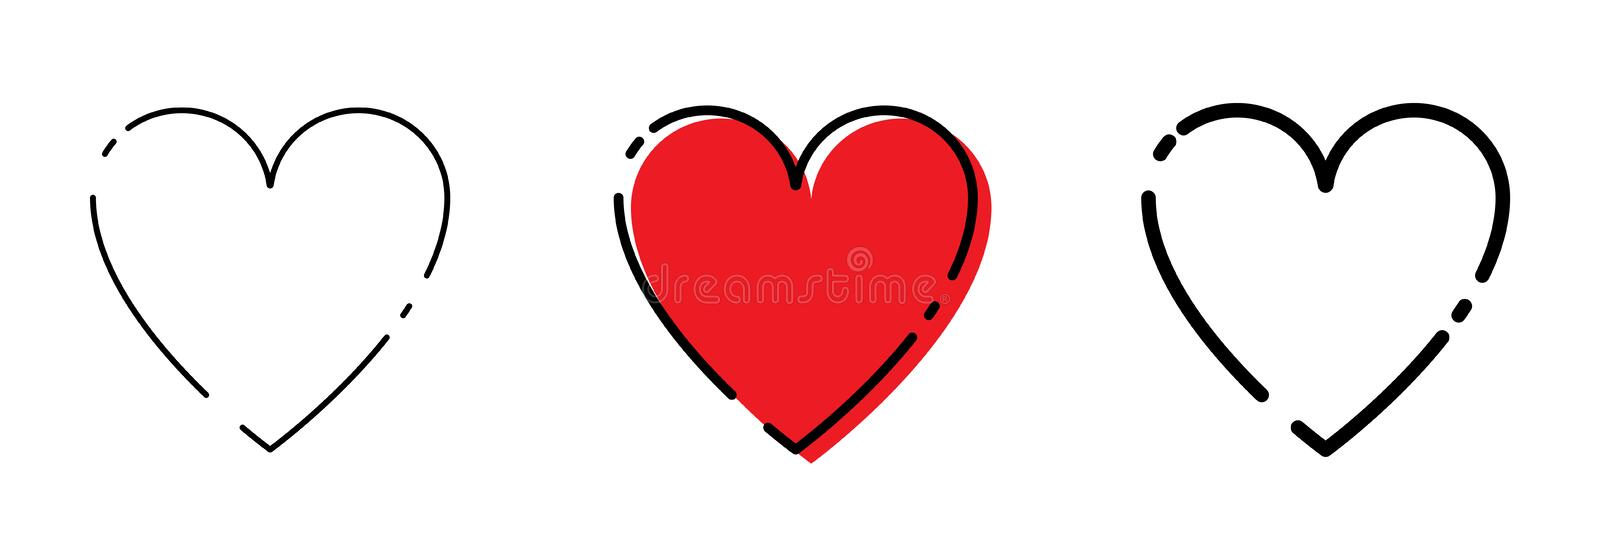 Three Heart icons Red and Black Color in trendy flat style. Hearts icons vector illustration